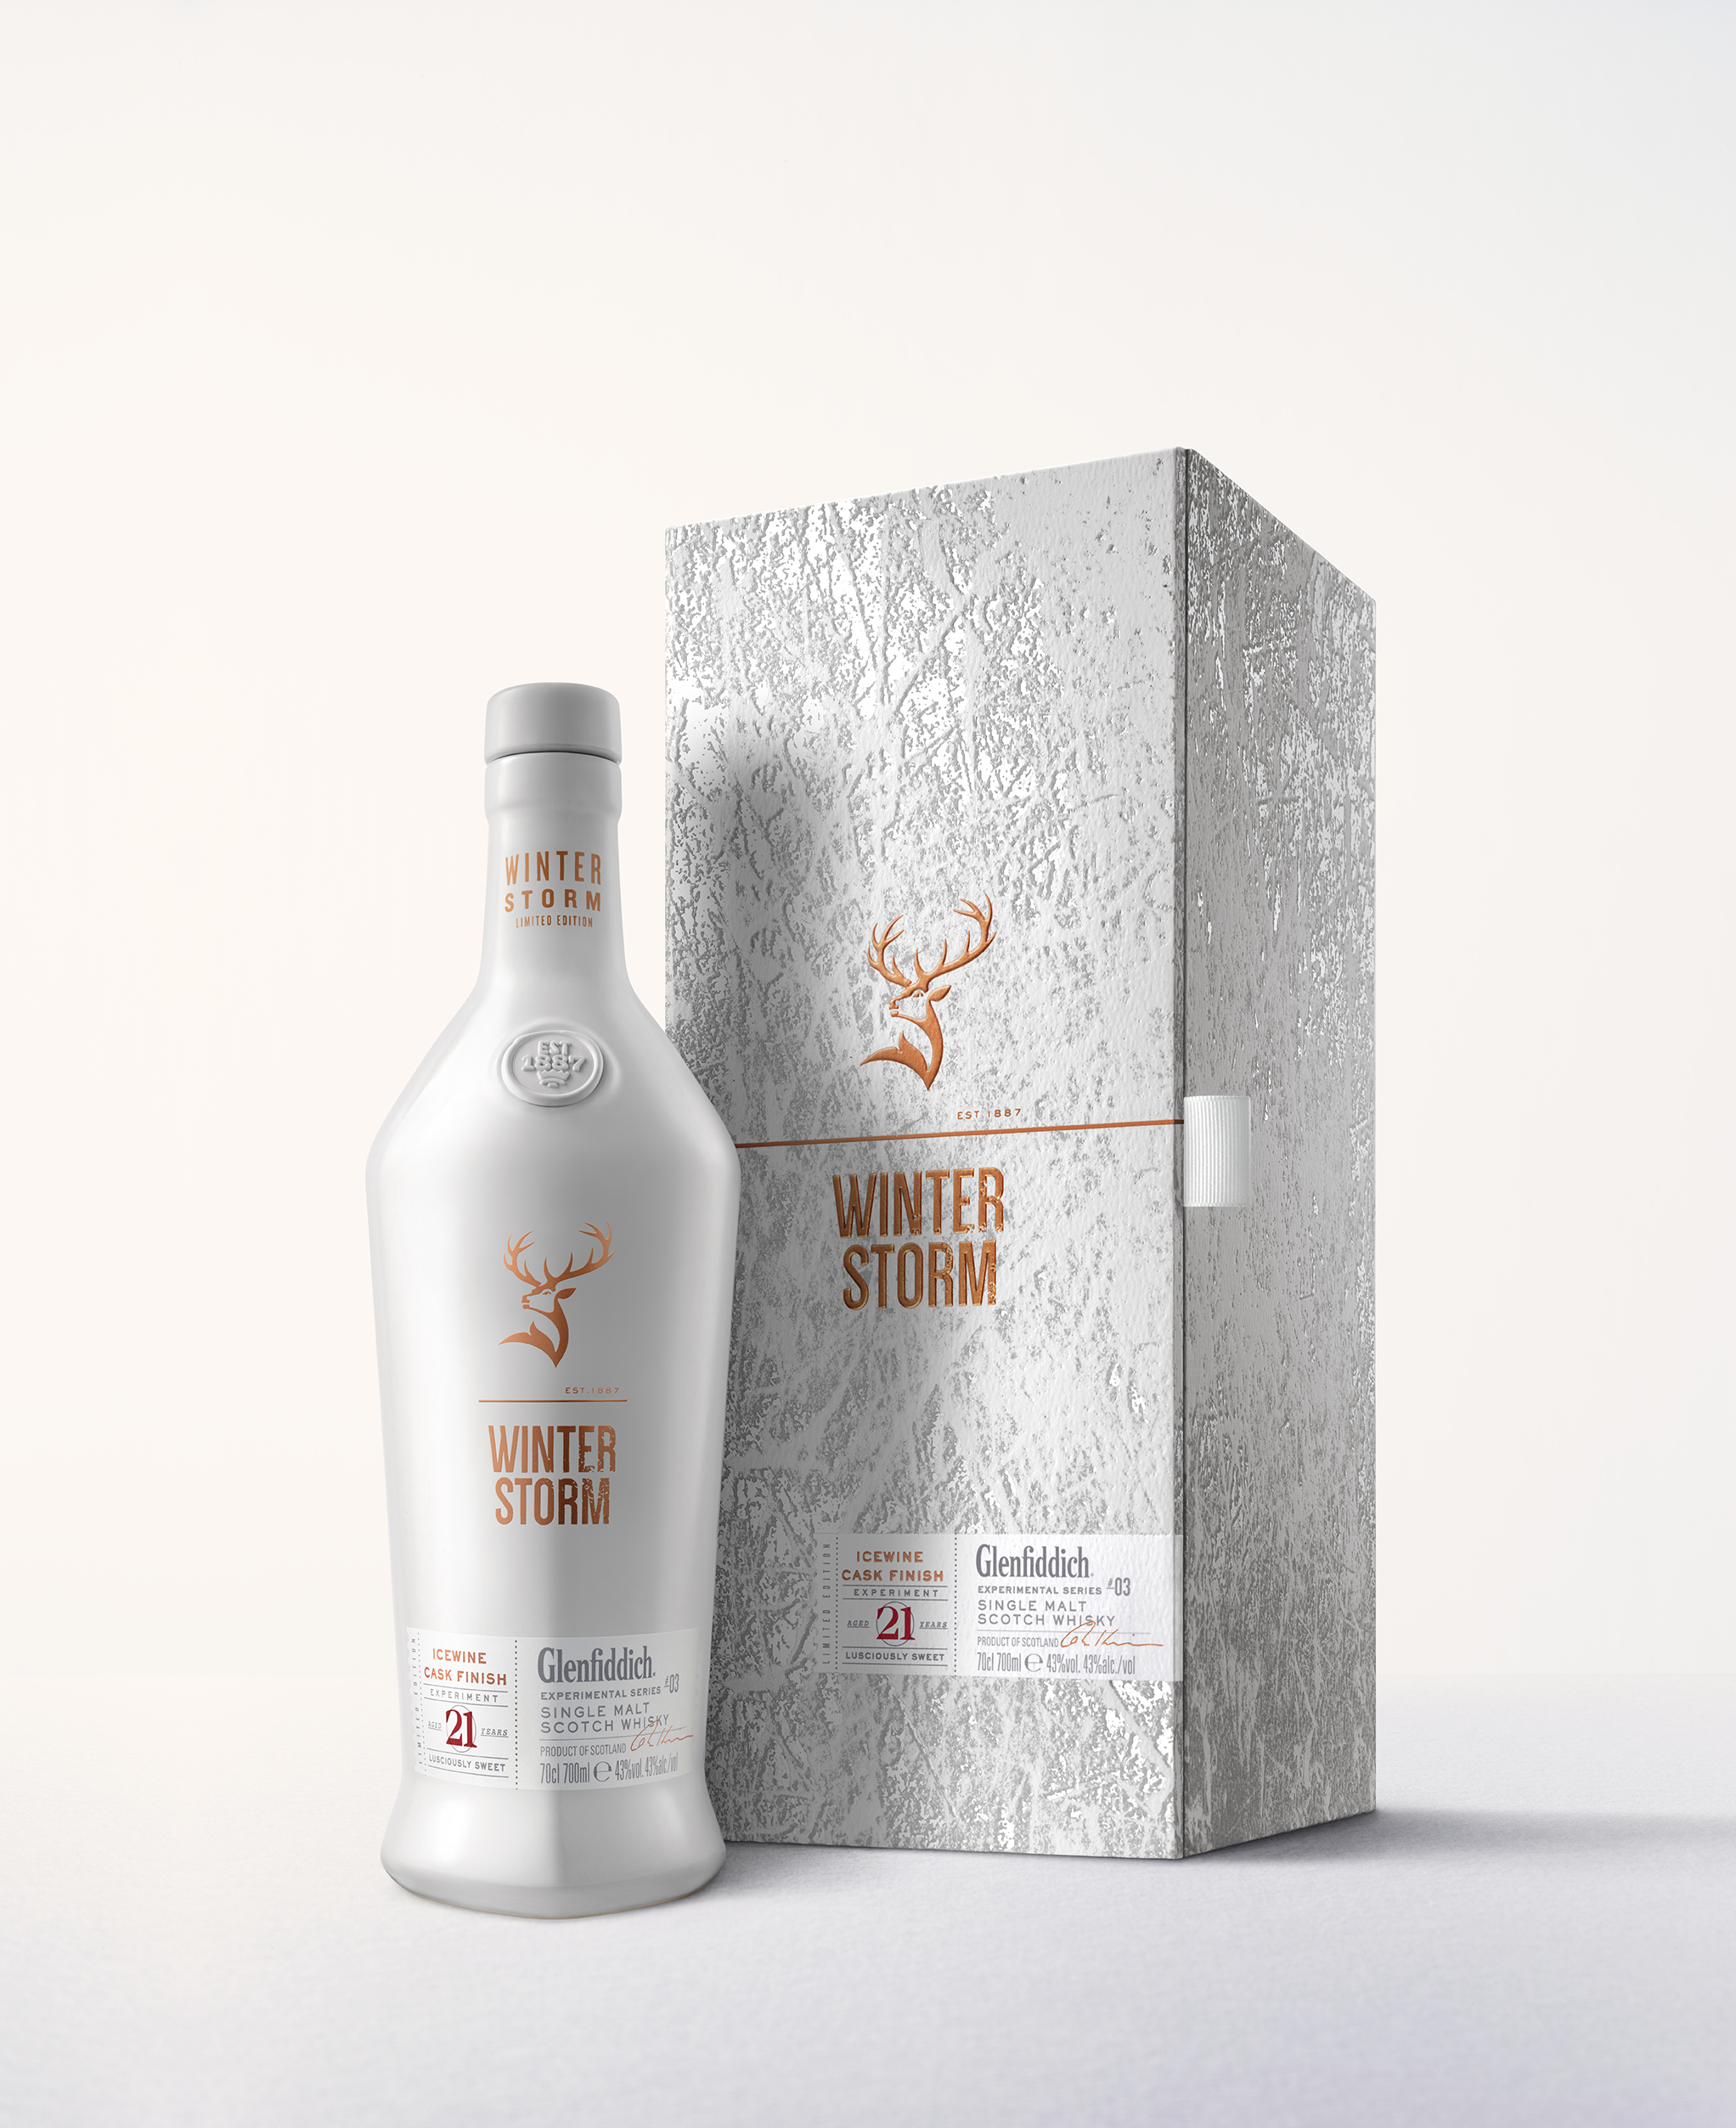 William Grant to launch 'Glenfiddich Winter Storm' whisky in